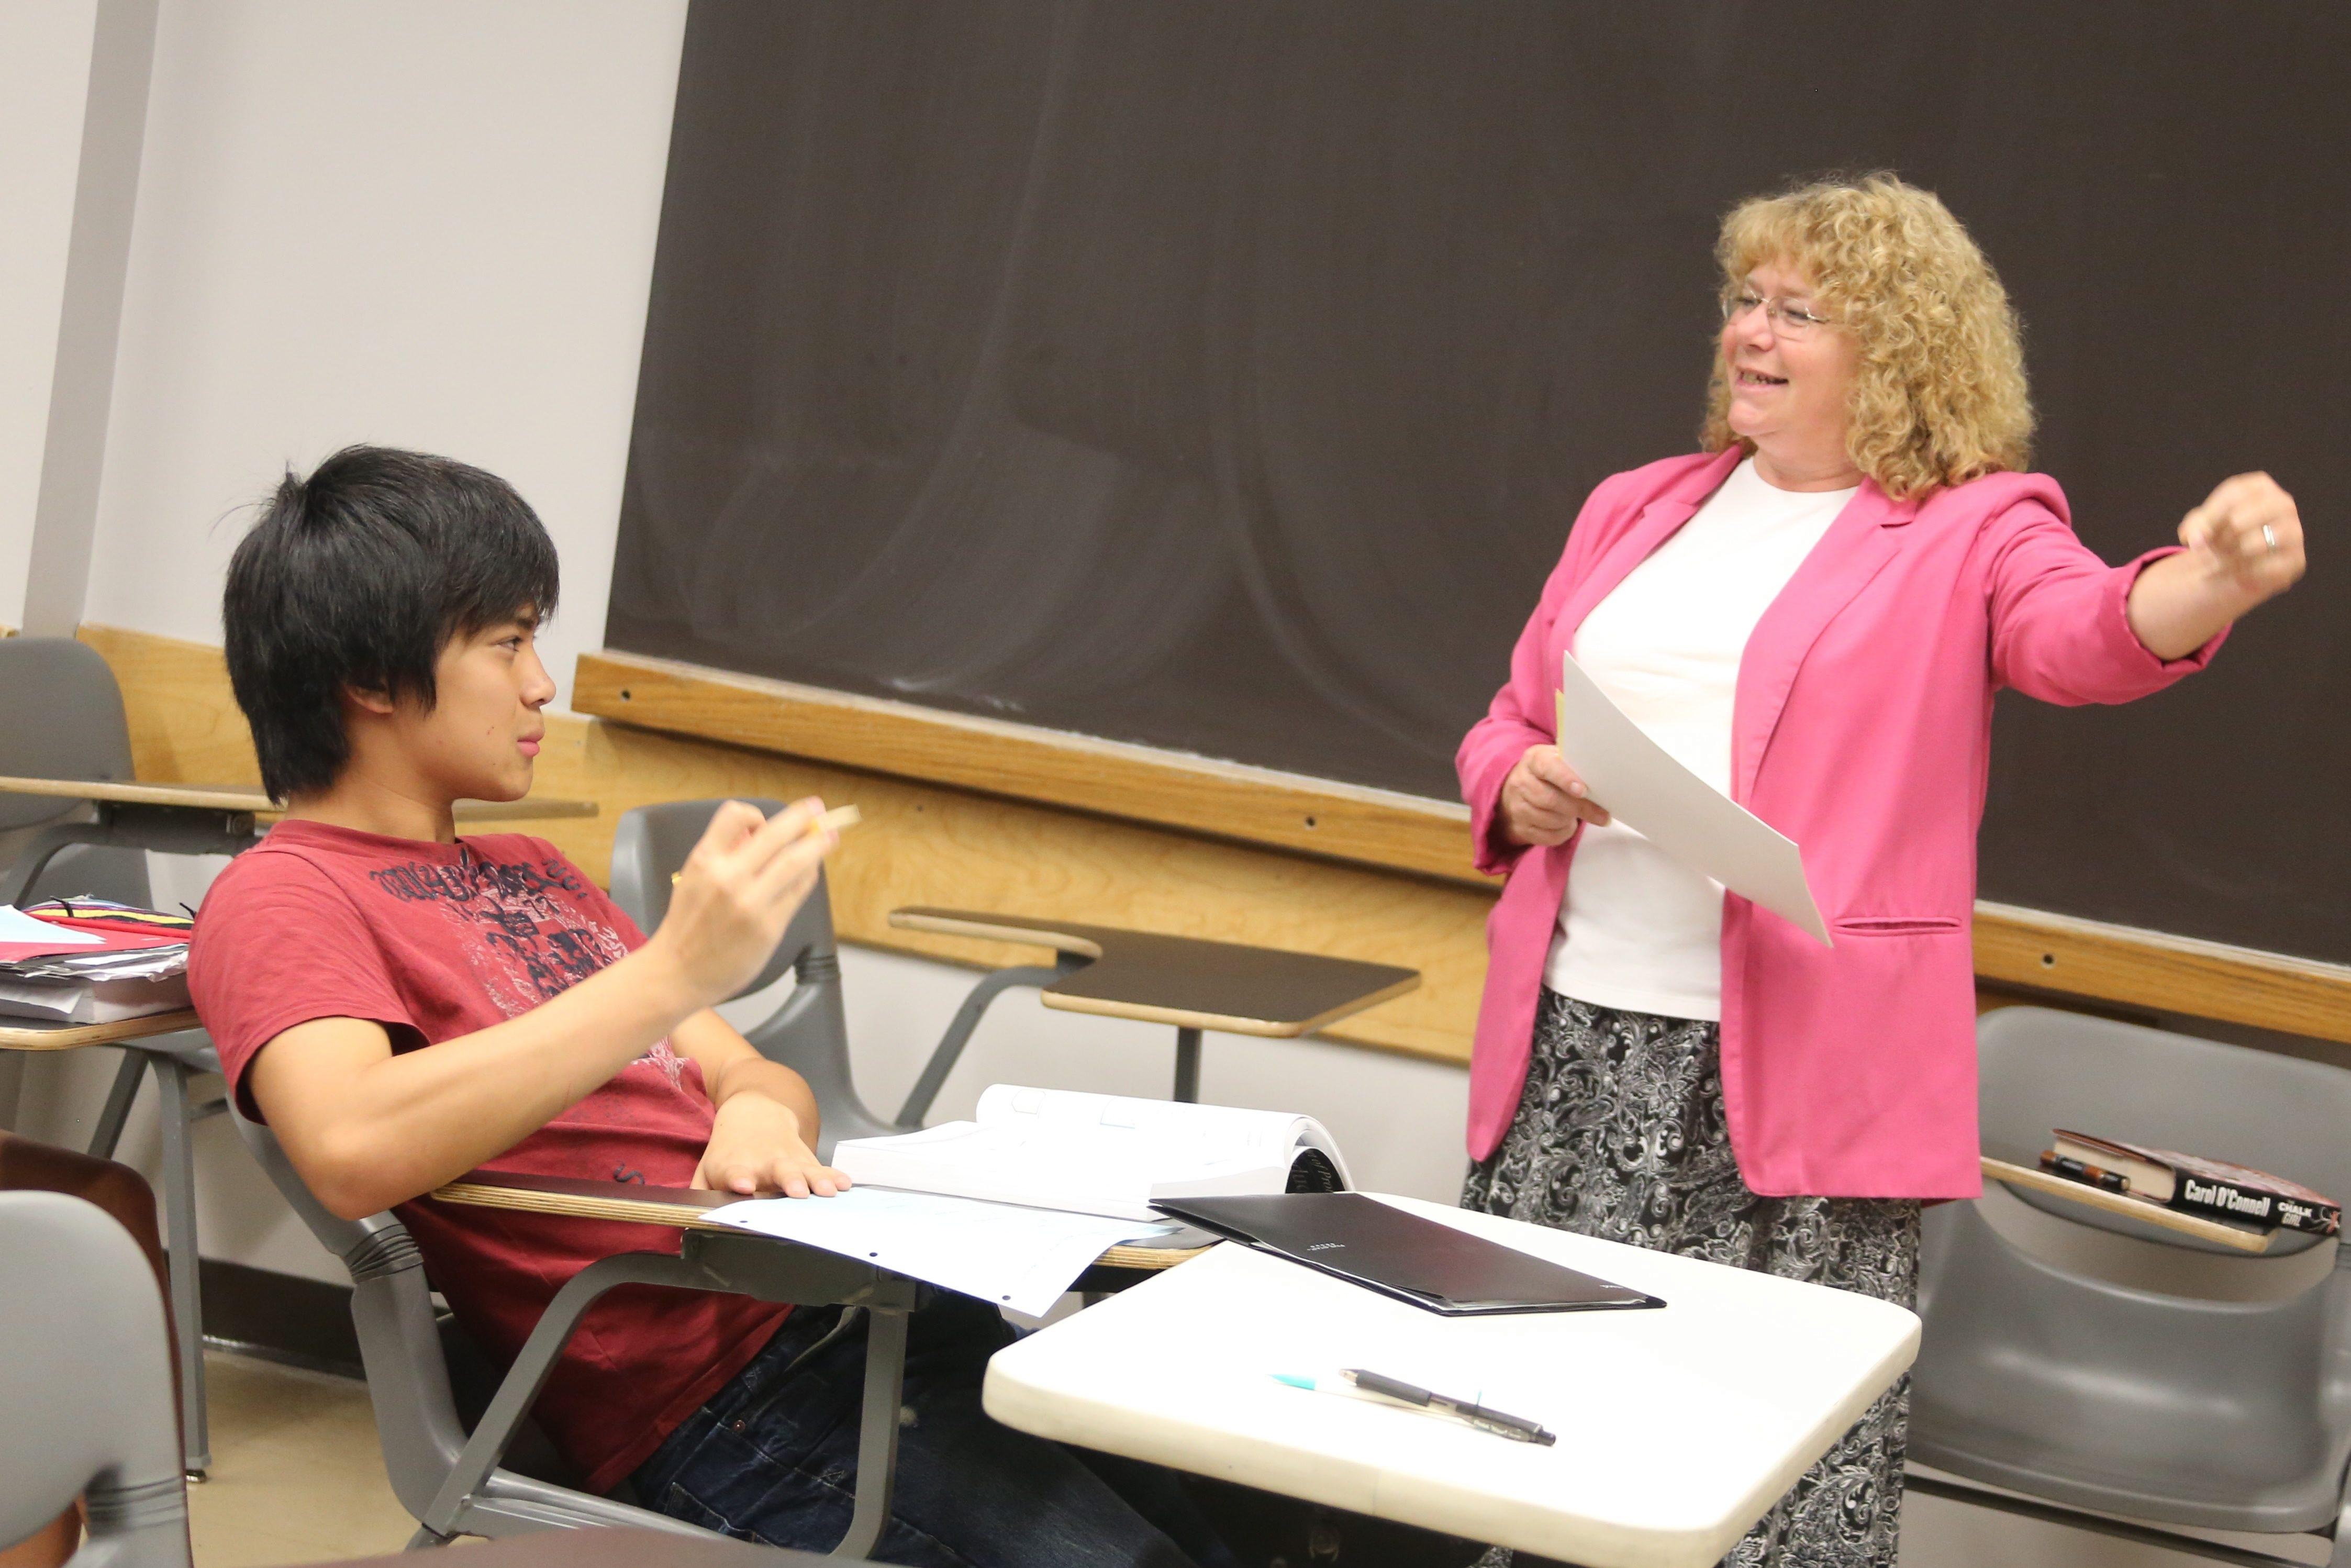 Worksheet Gifted Math Students gifted math program at ub offers middle high schoolers accelerated courses